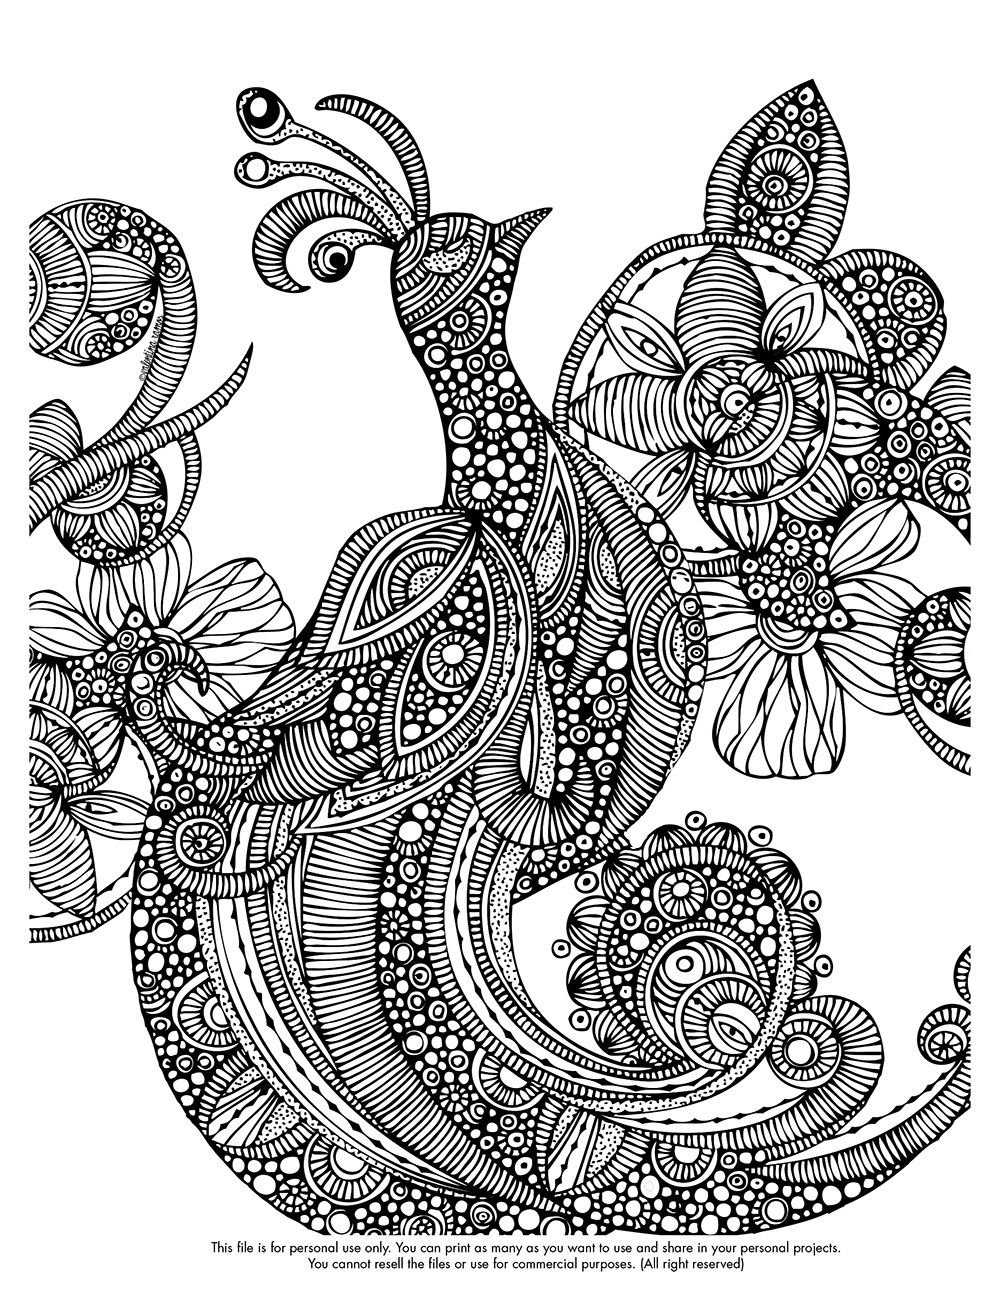 Free coloring pages in pdf - Happy Coloring Monday Here You Free Coloring Page Http Valentinadesign Com